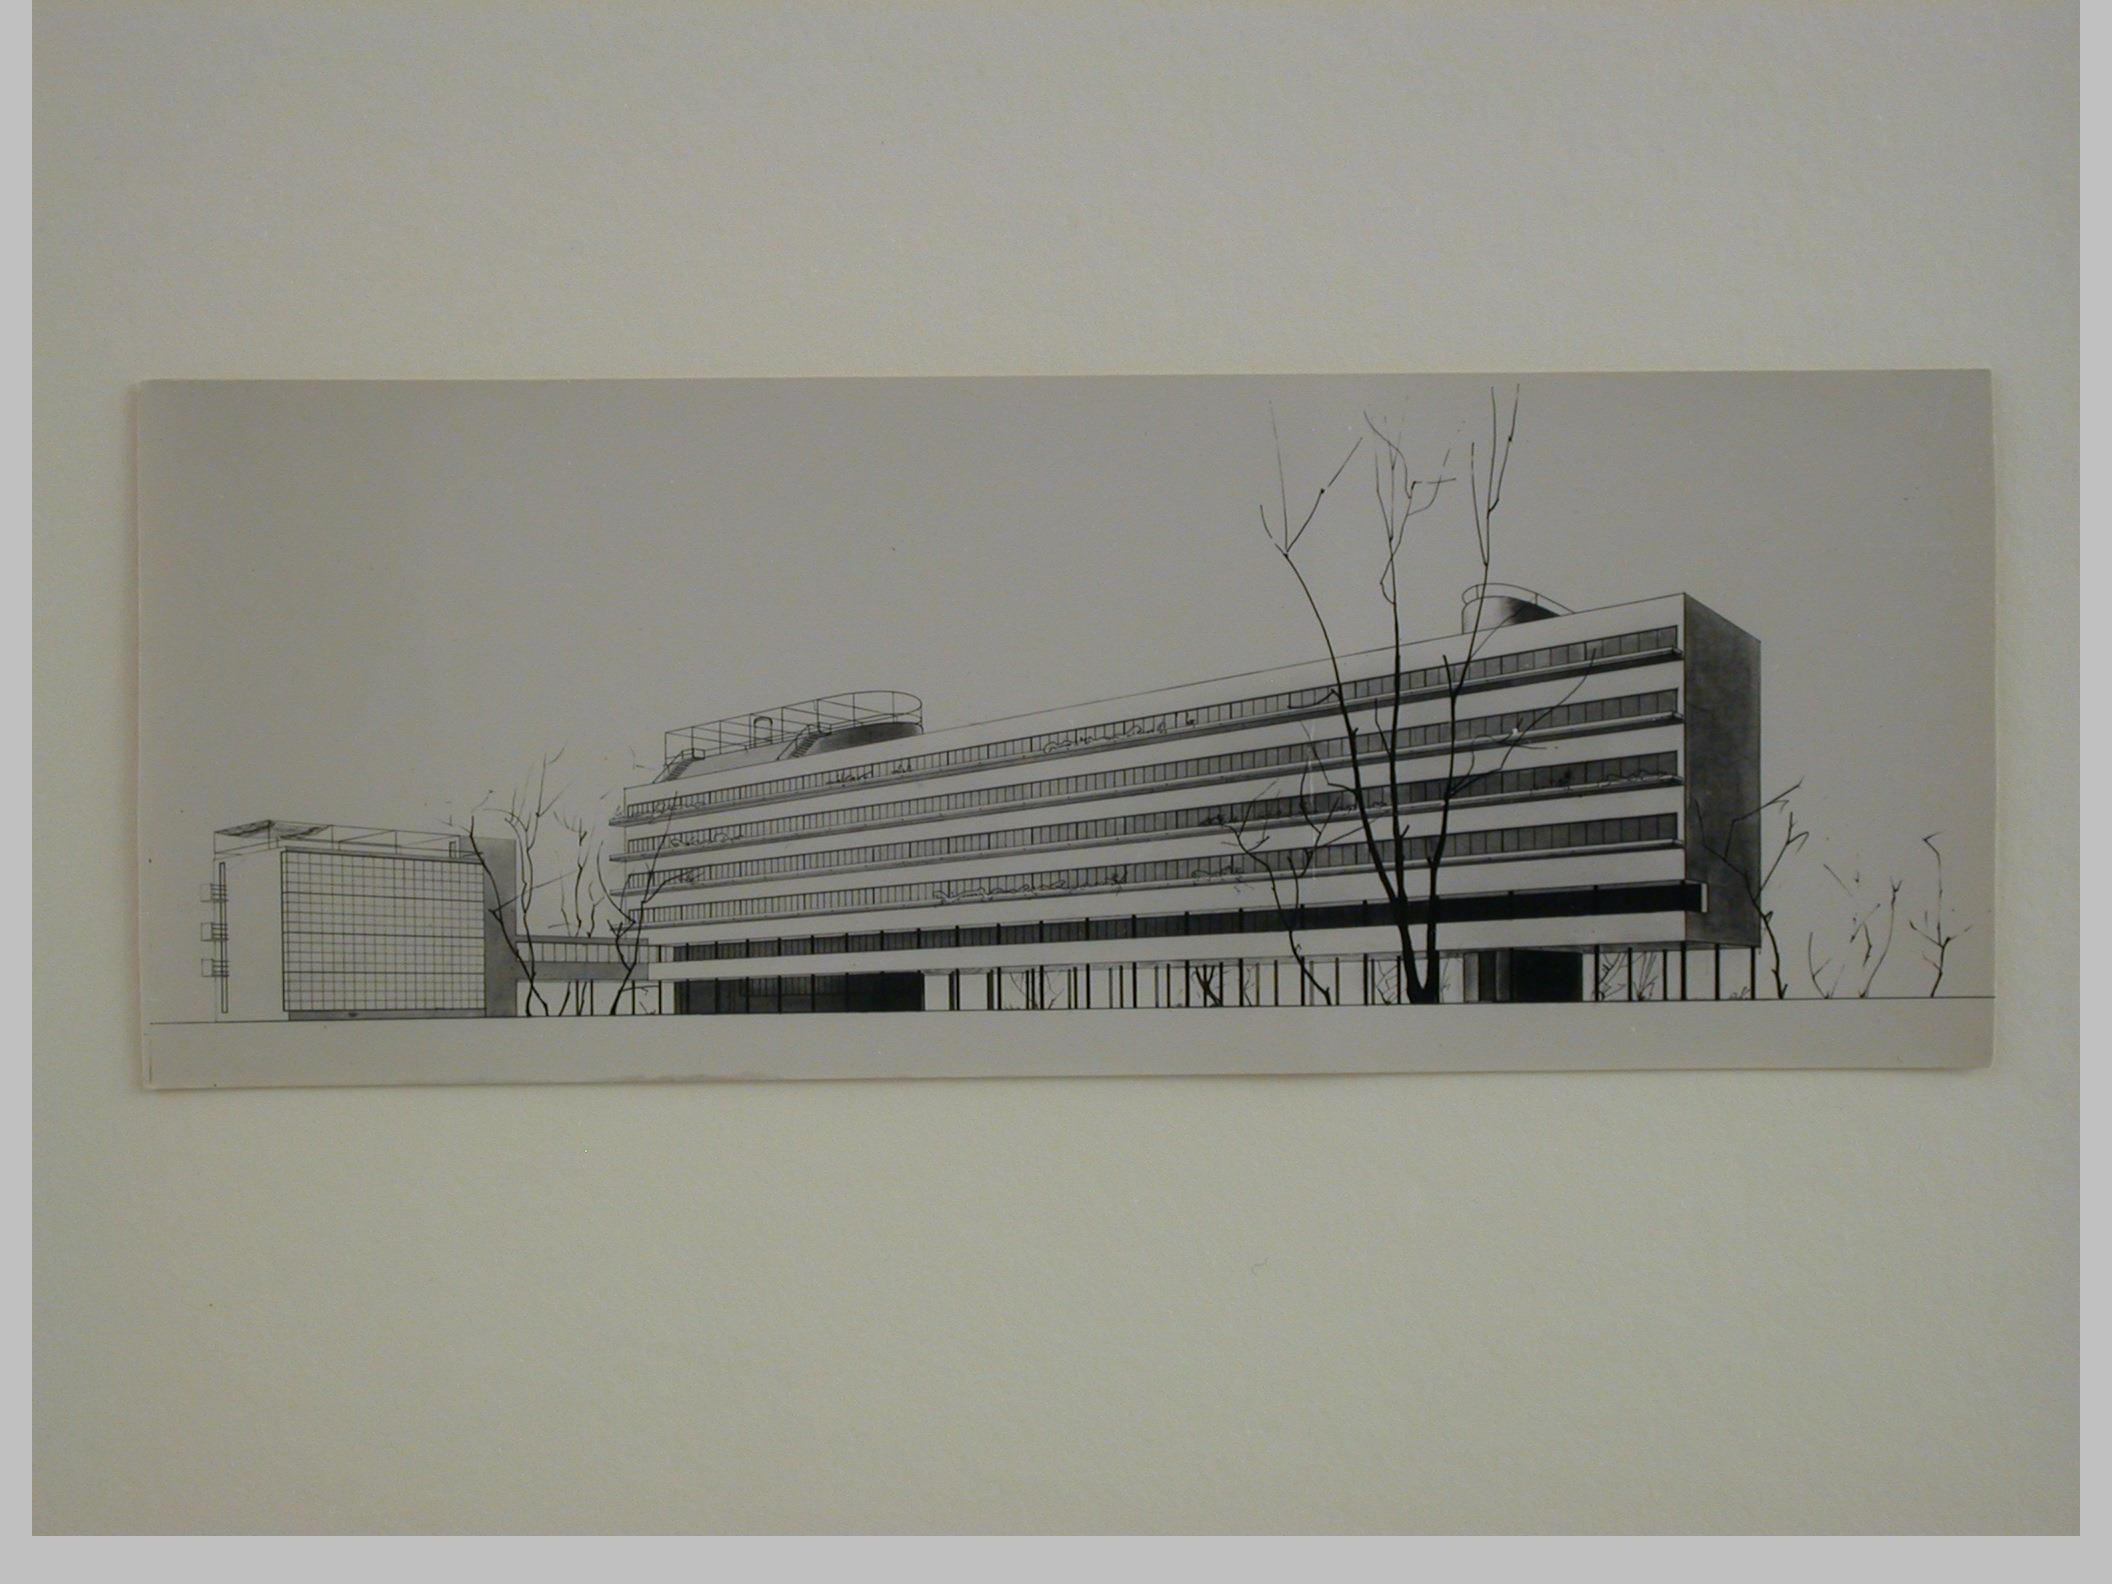 Gruntal, V.G. Photograph of a perspective drawing for the People's Commissariat for Finance (Narkomfin) Apartment Building, 25 Novinskii Boulevard, Moscow, before 1929